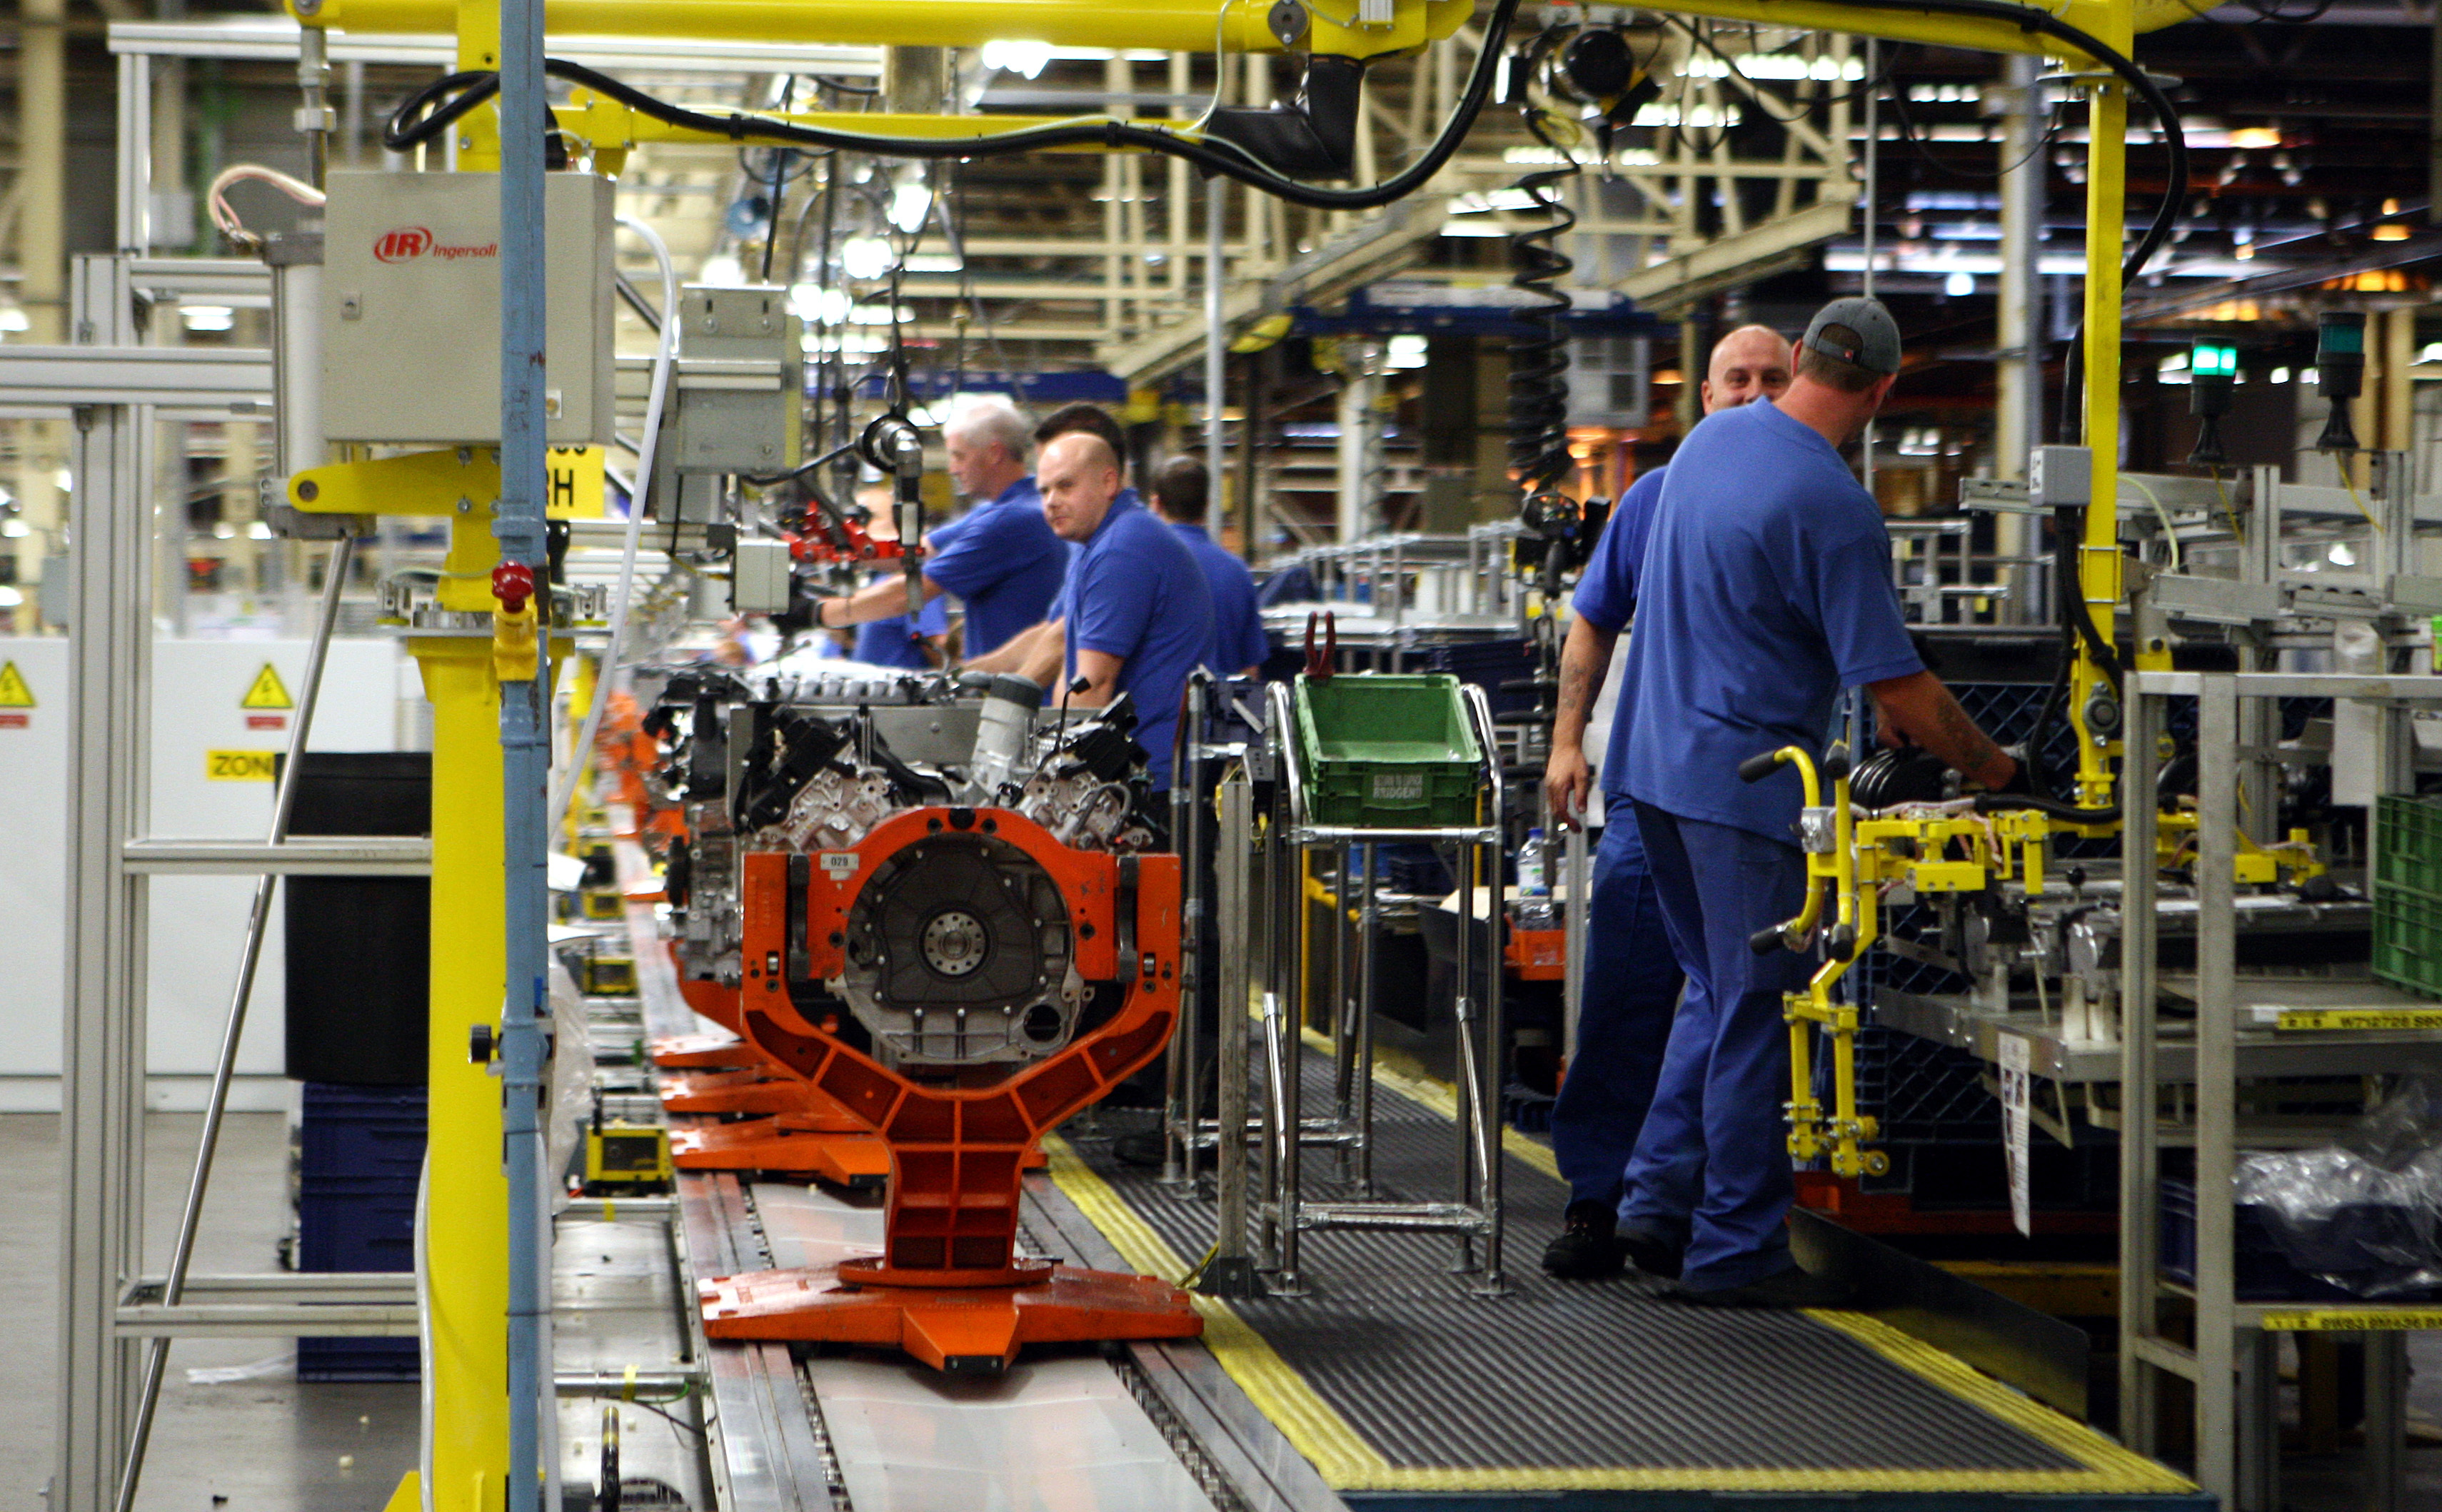 Ford confirms plan to close Bridgend plant with 1700 job losses